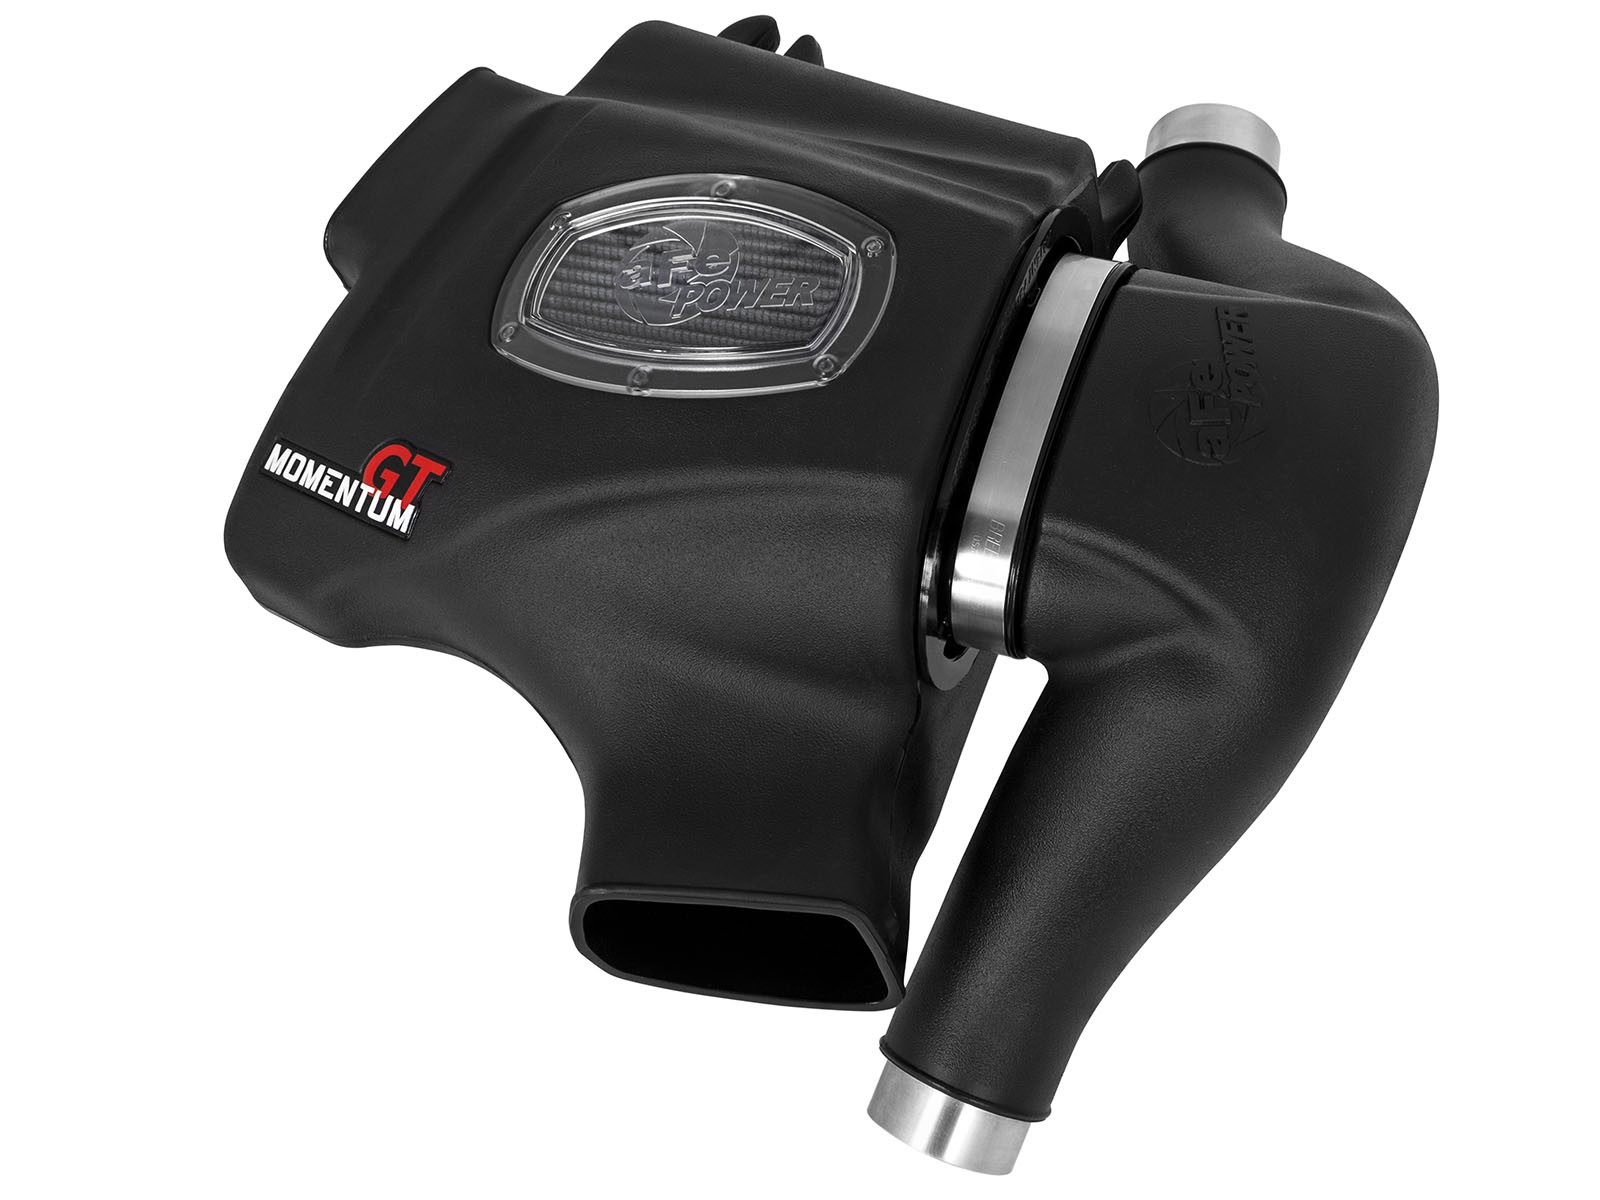 aFe POWER 51-76306 Momentum GT Pro DRY S Cold Air Intake System